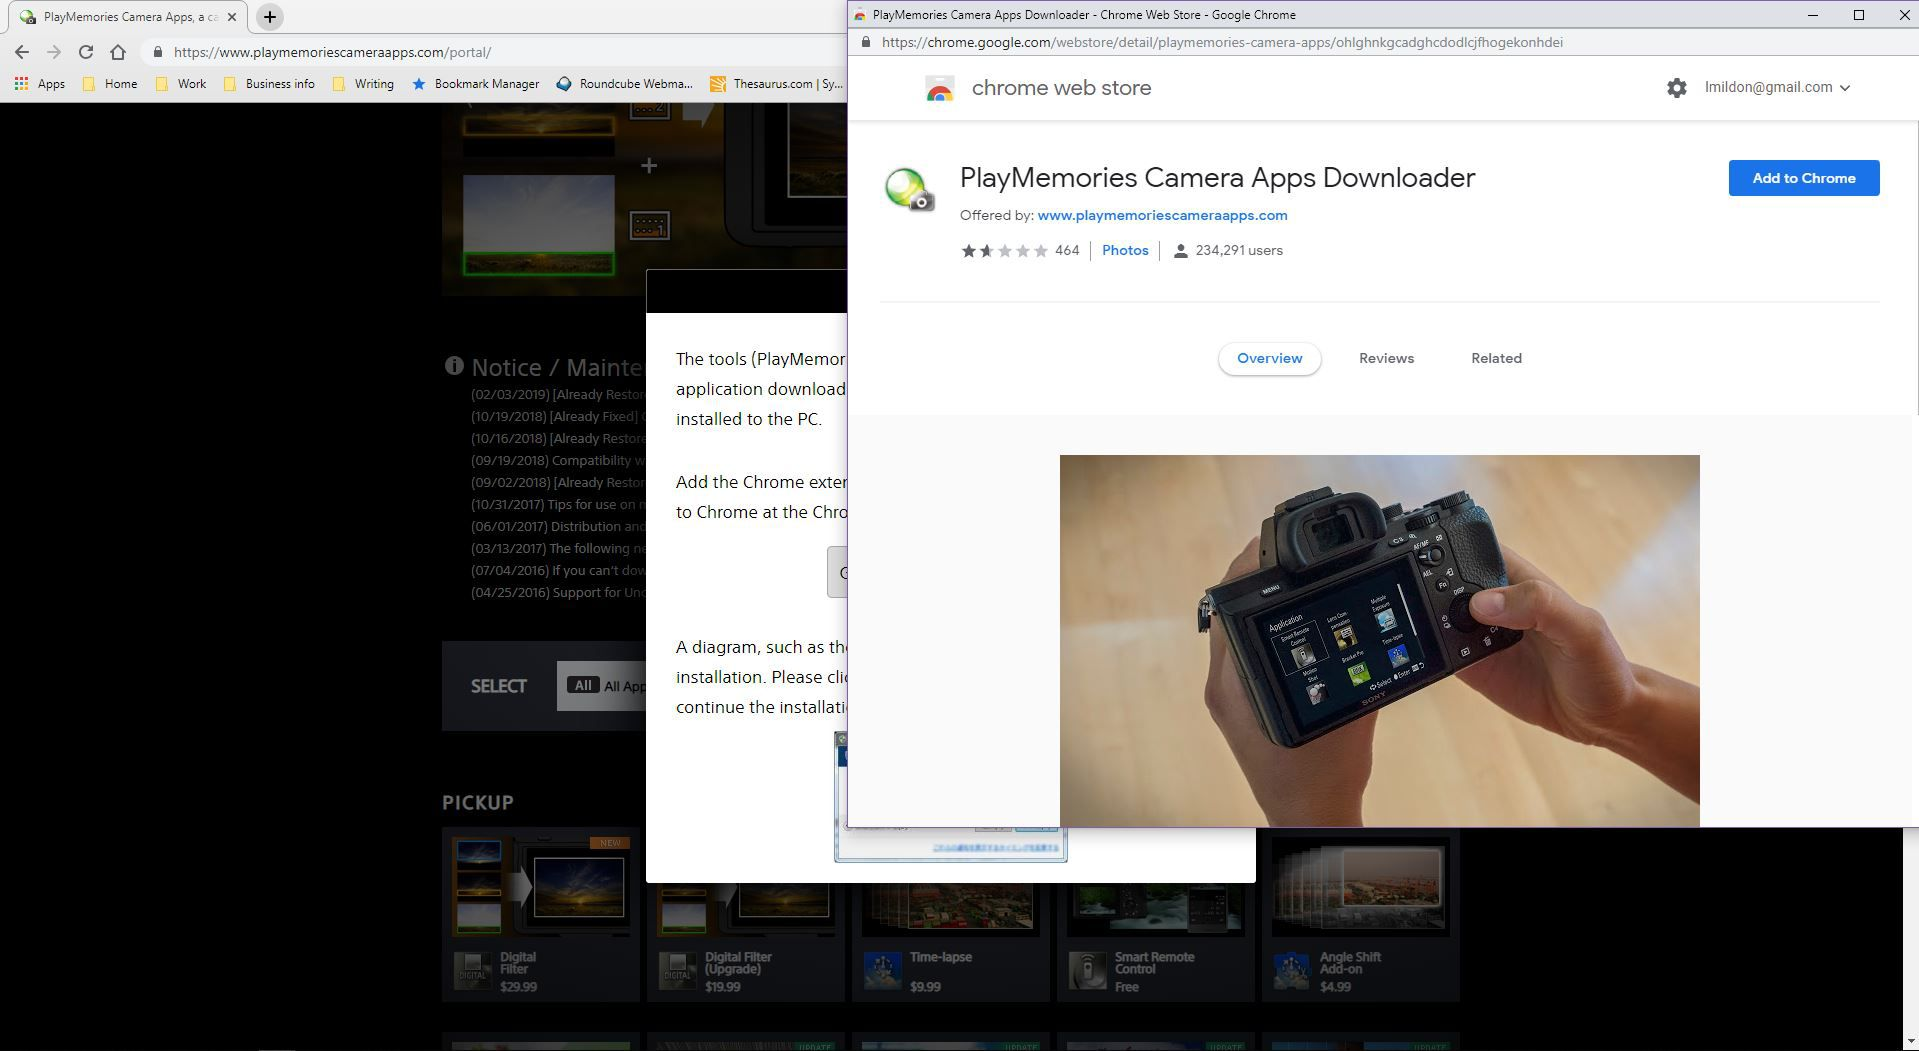 How to Use the Sony Camera App PlayMemories